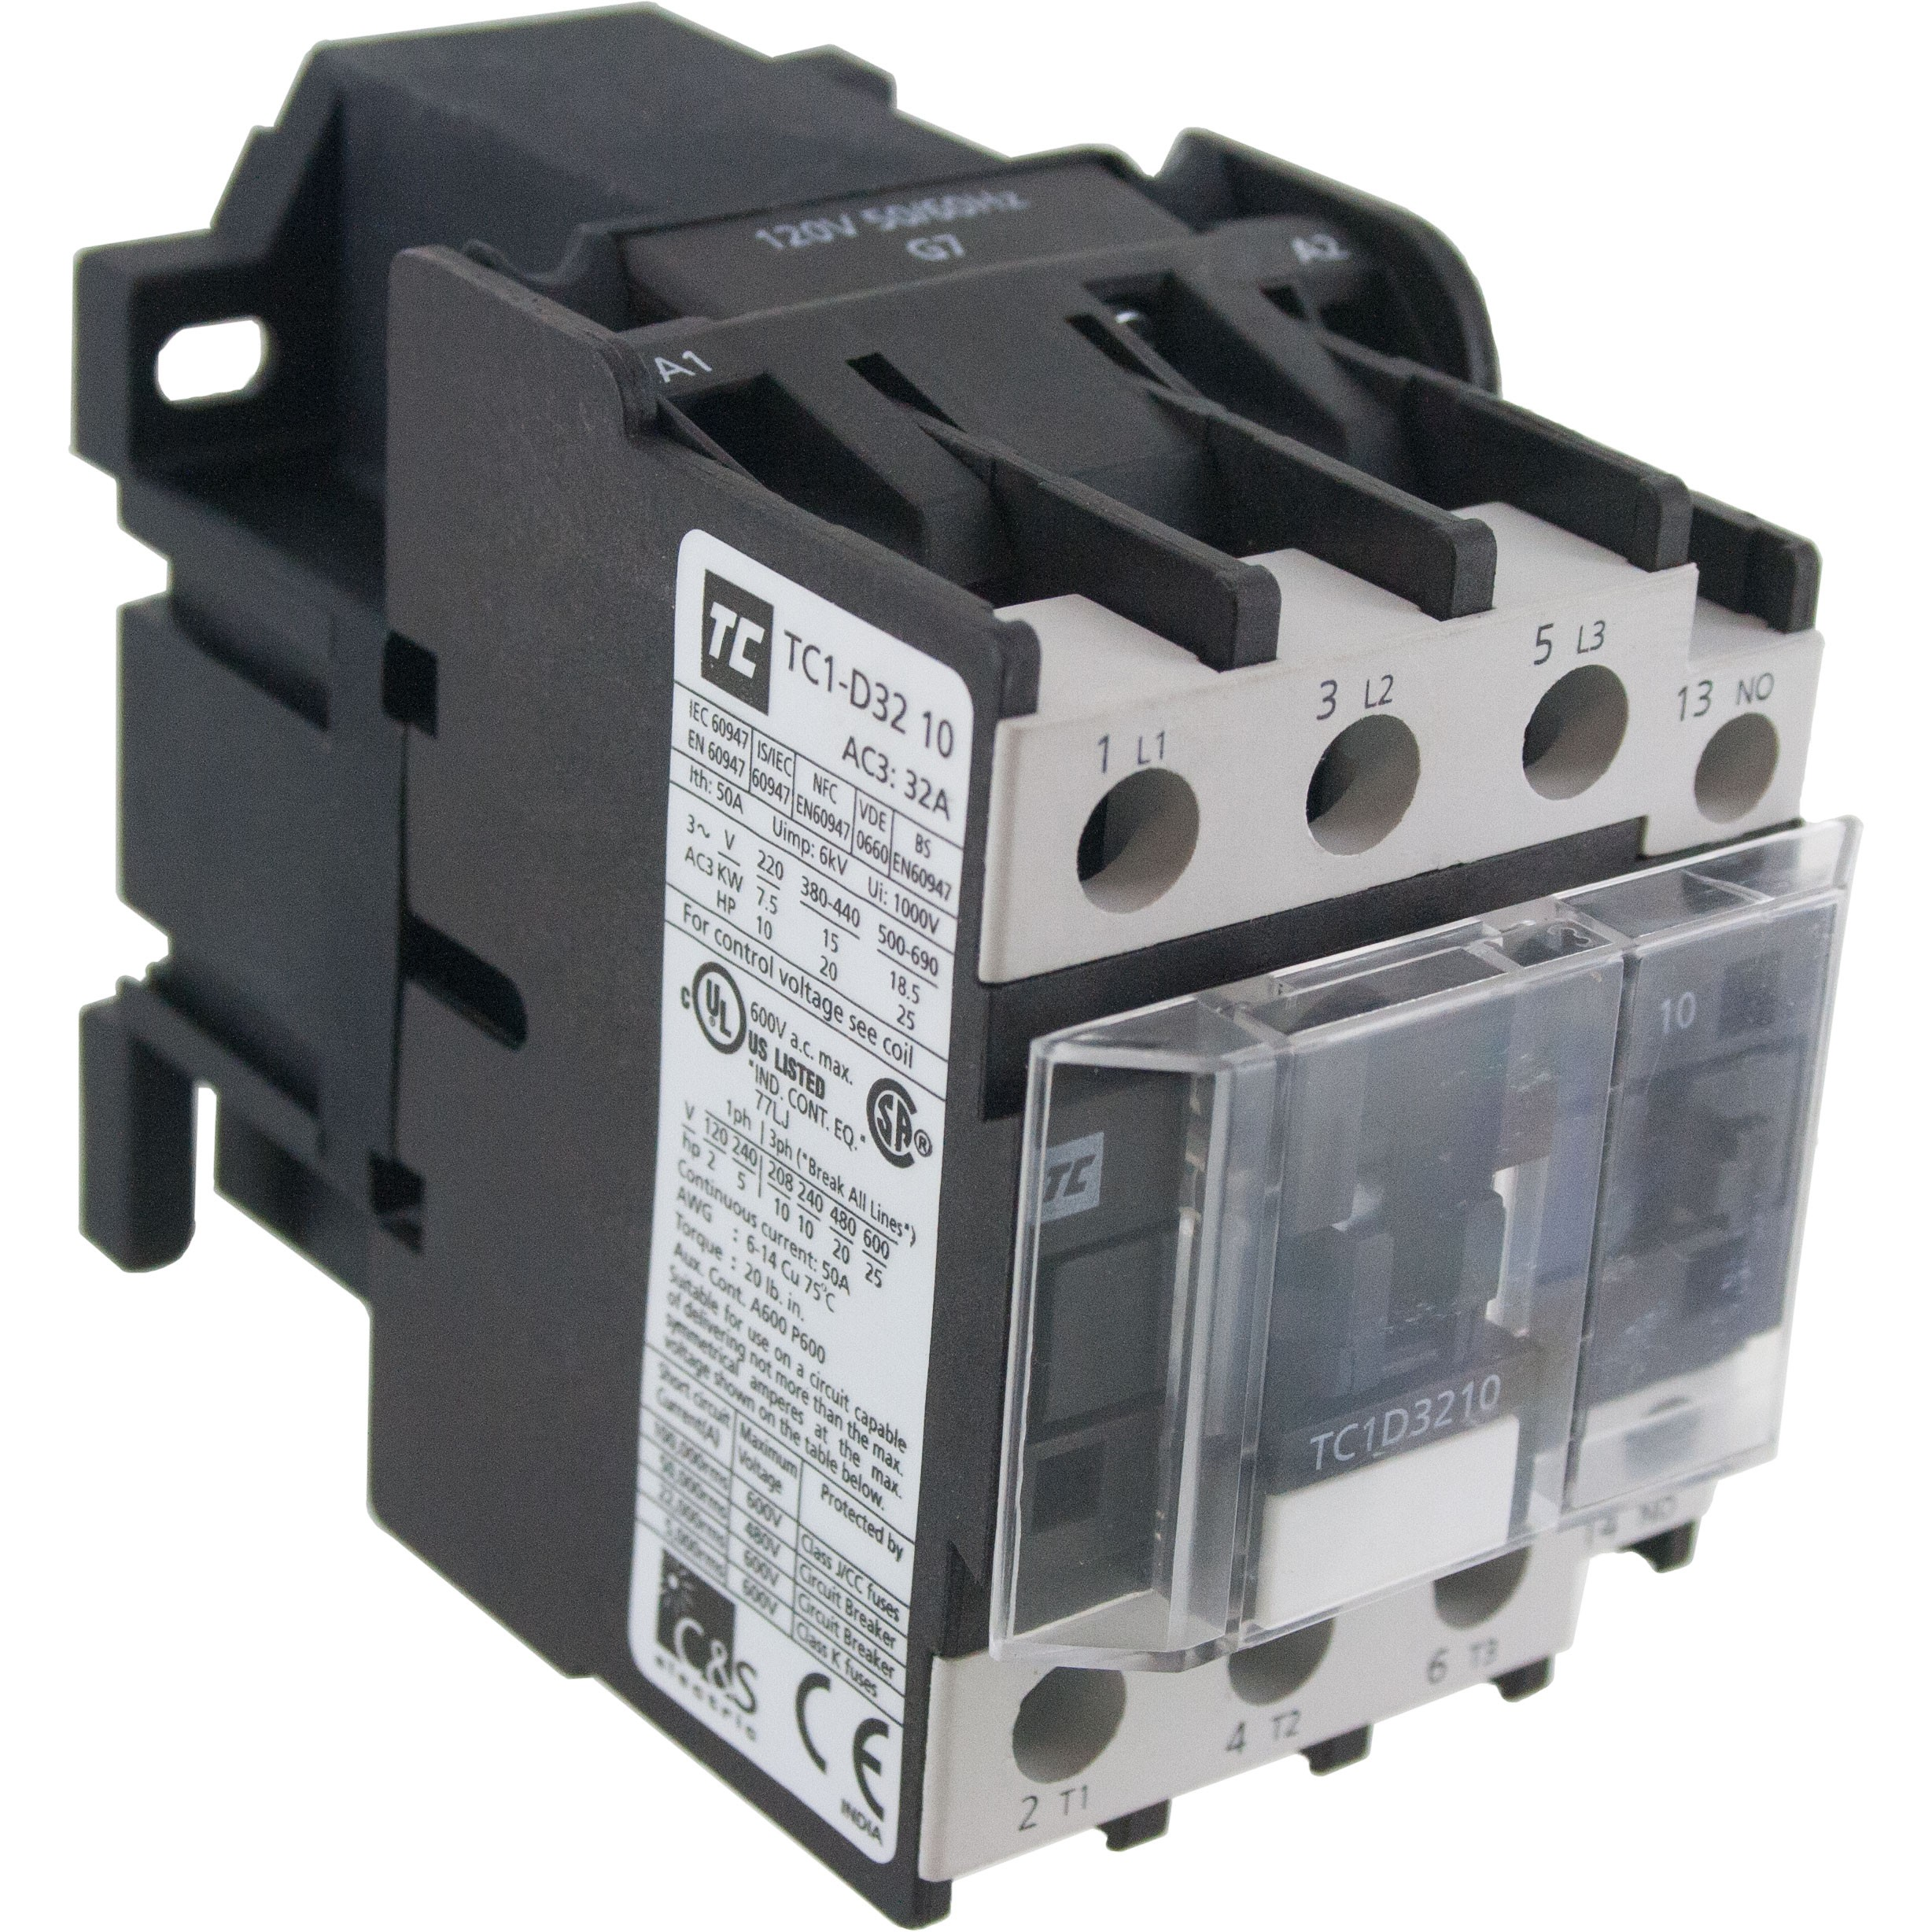 3 Pole Contactor 32 Amp 24 Volt AC Coil Angle